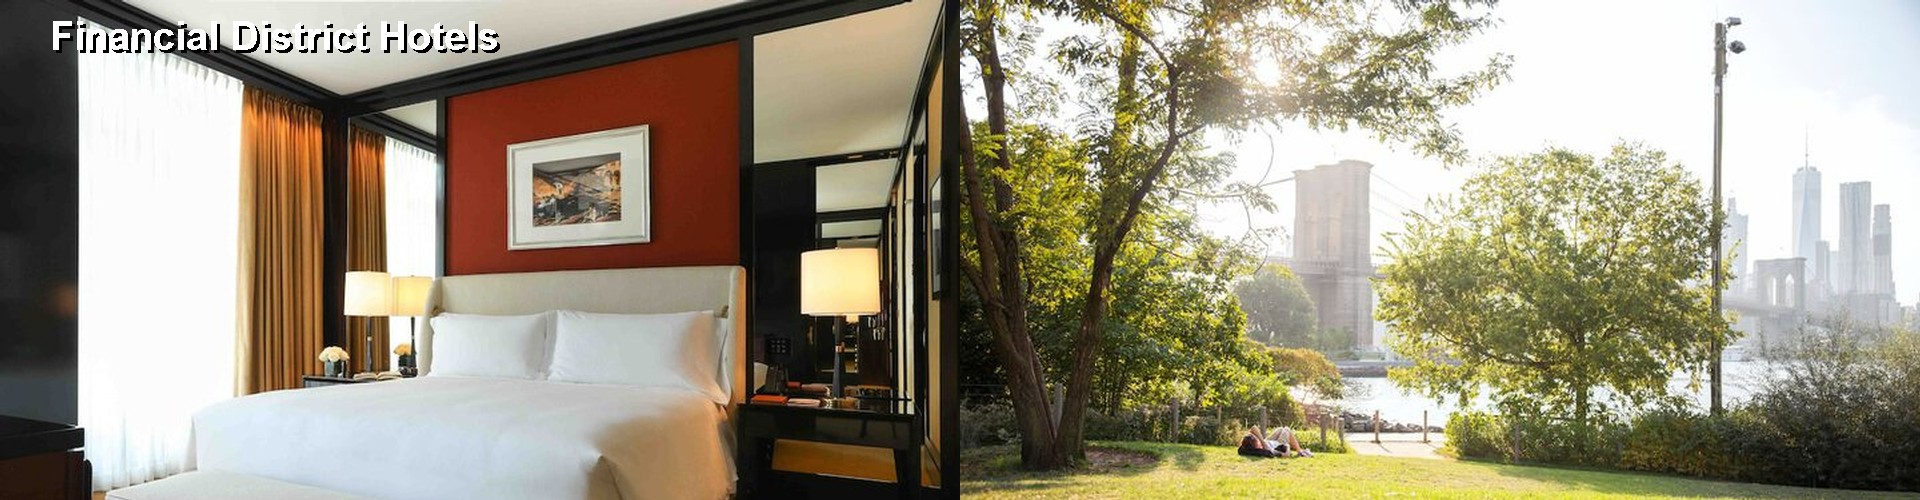 5 Best Hotels near Financial District